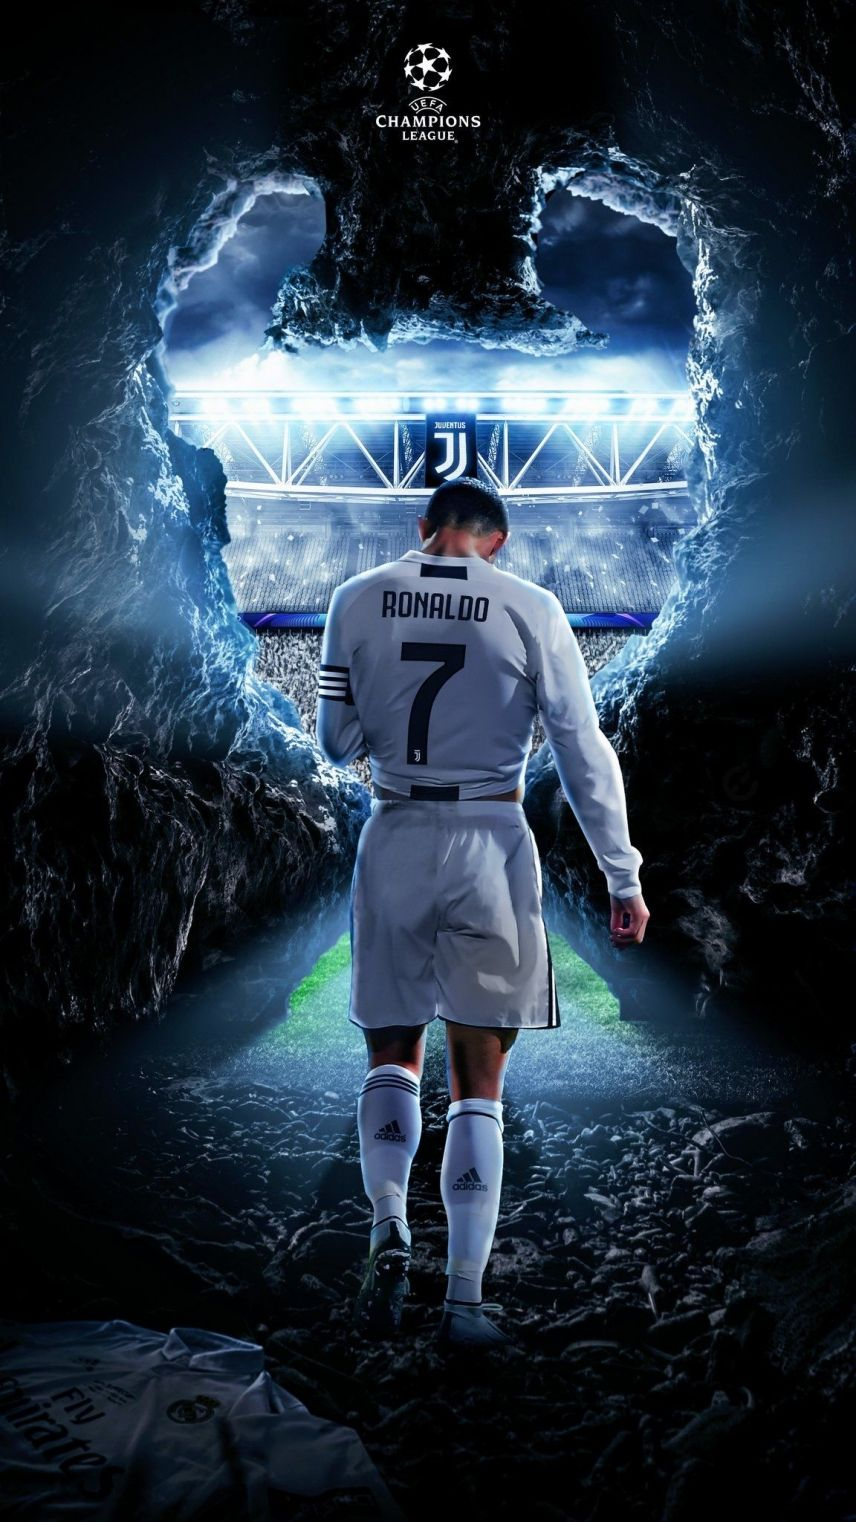 THE BEST 19 CRISTIANO RONALDO WALLPAPER PHOTOS HD 2020 CR7 856x1522